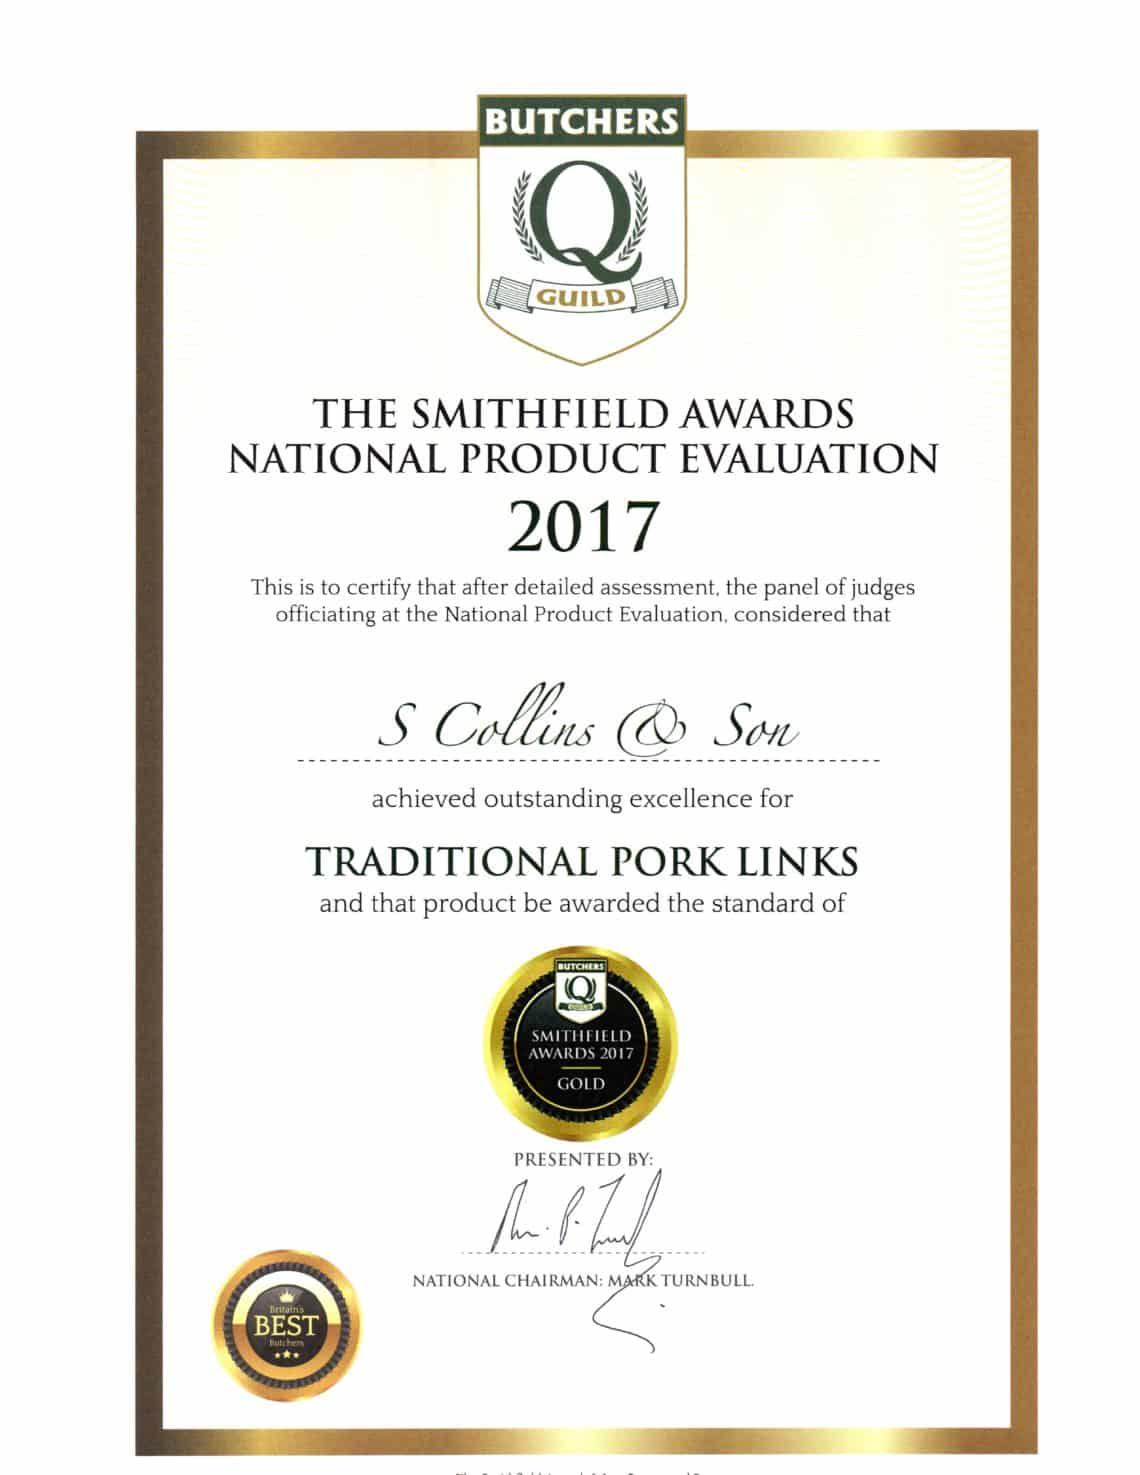 Traditional Pork Links: Smithfield Awards 2017